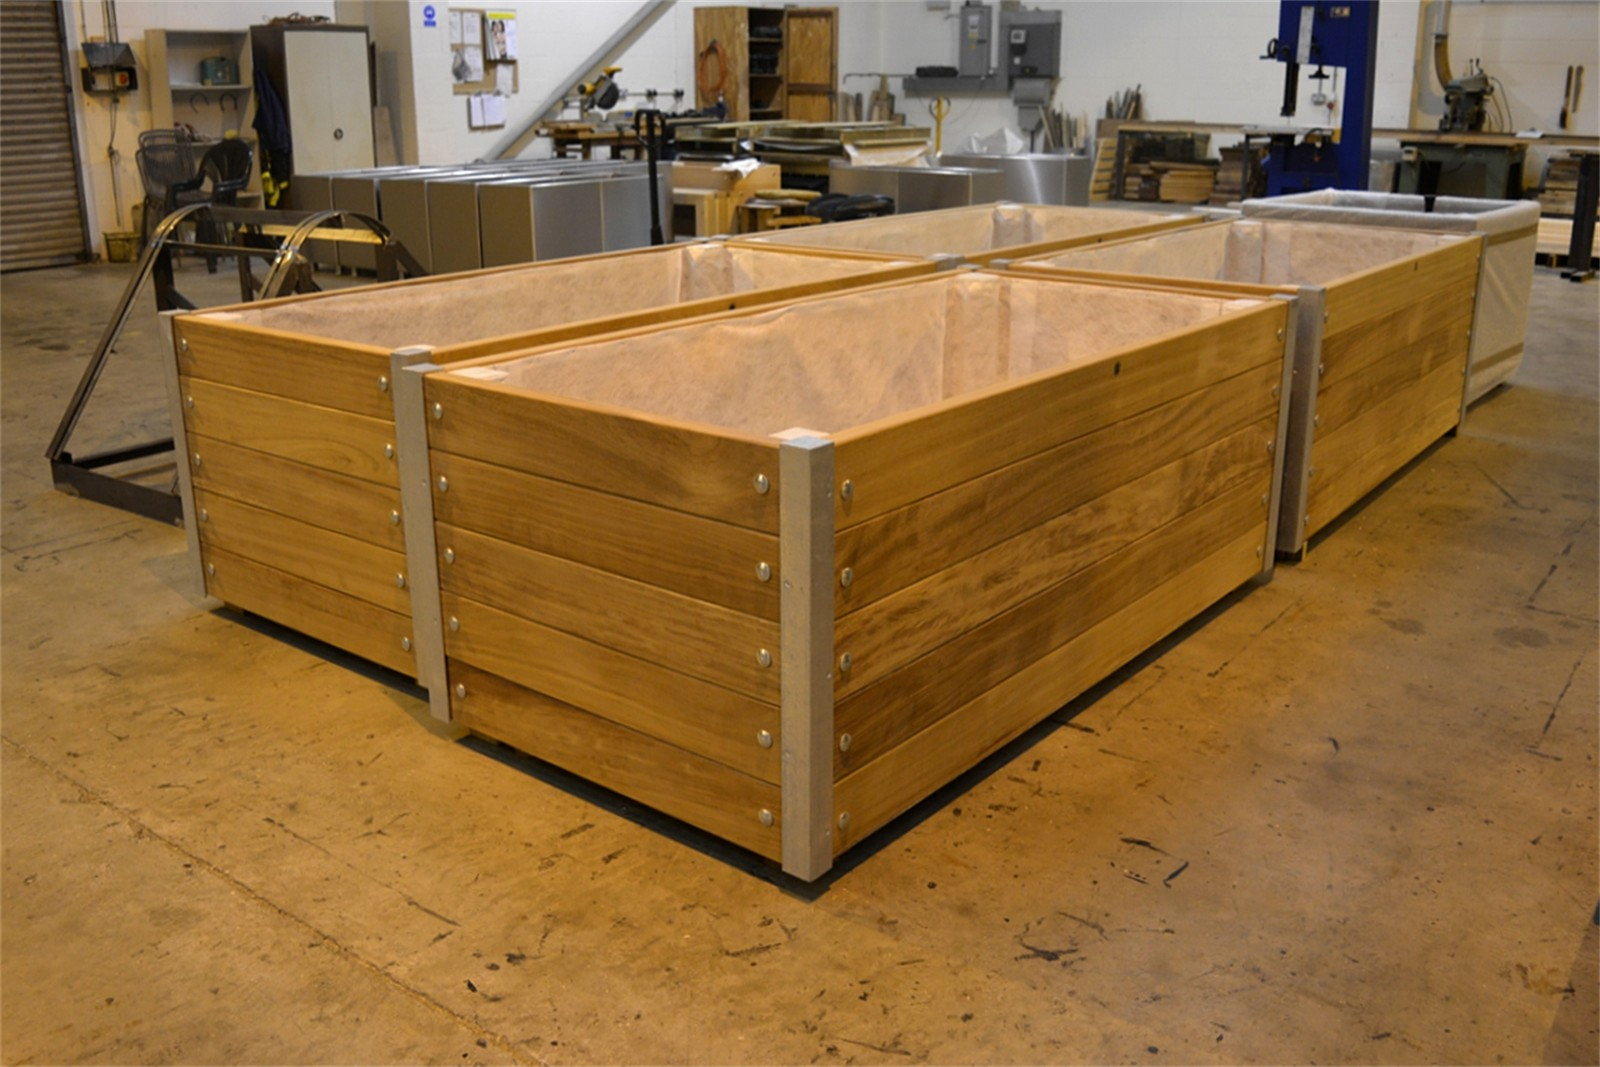 c121t05 - Mews planters in manufacture